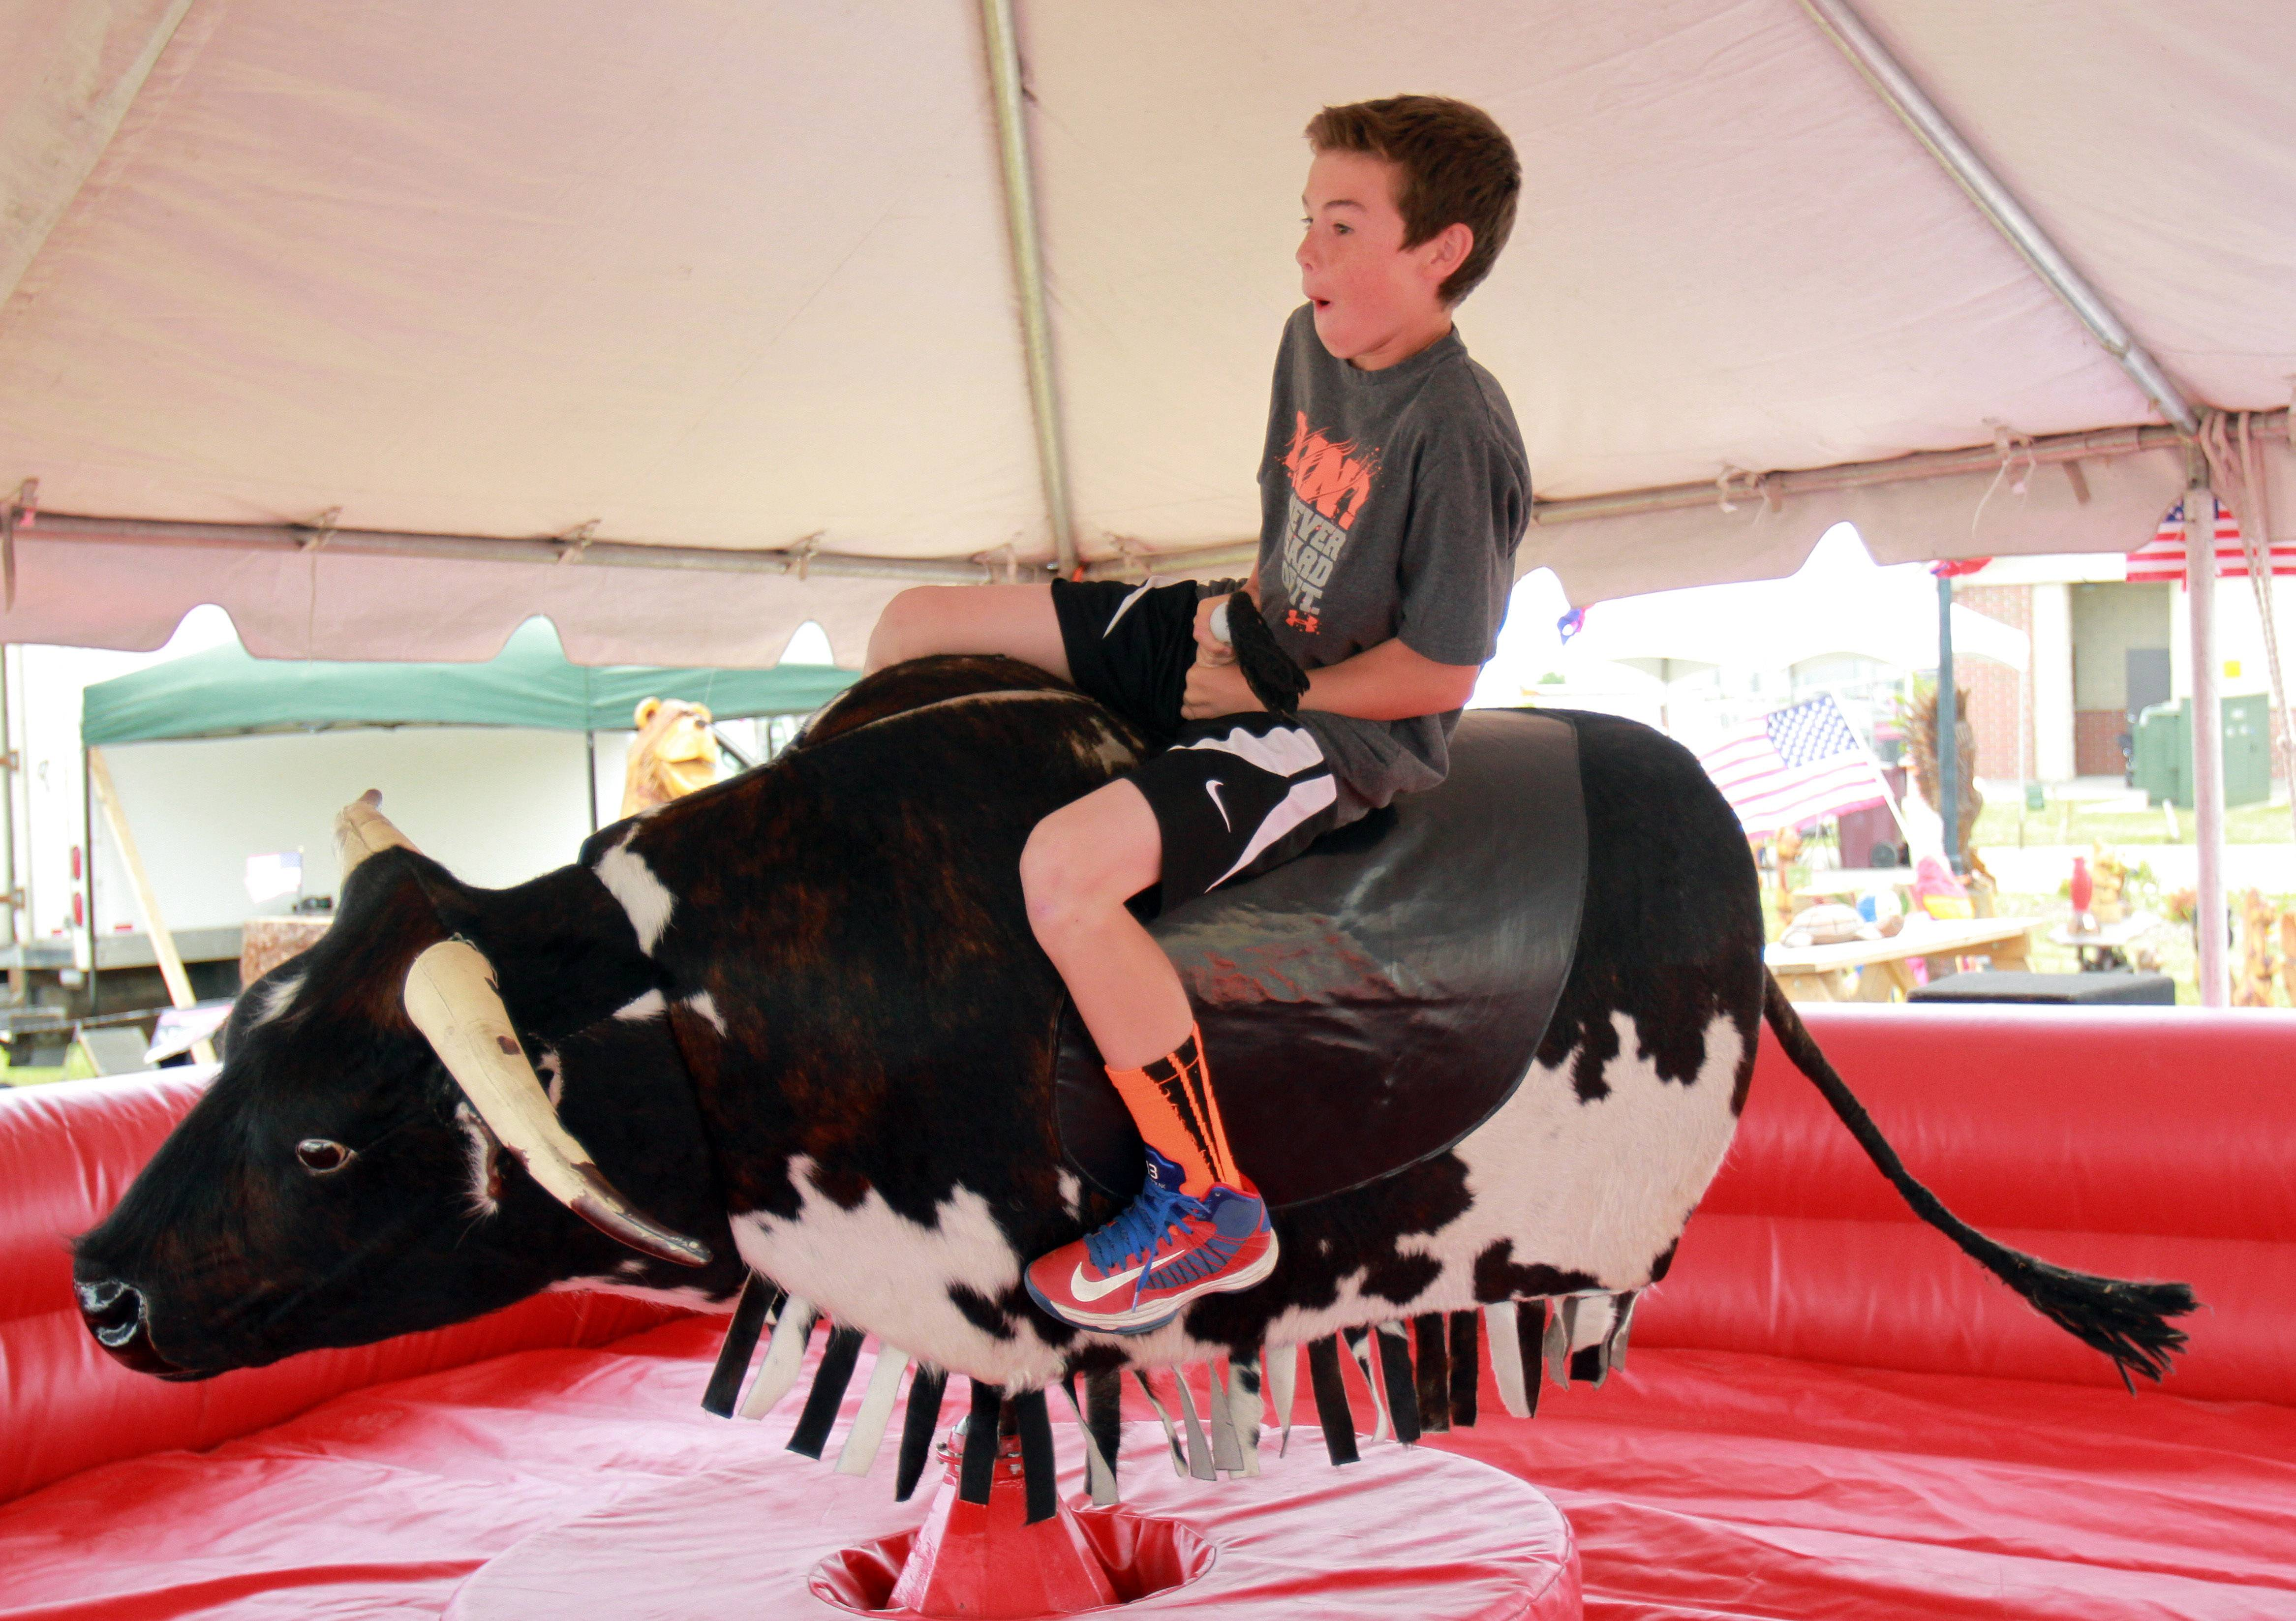 13-year-old Max Sanders, of Lindenhurst, rides a mechanical bull Friday at the Lake County Fair in Grayslake.